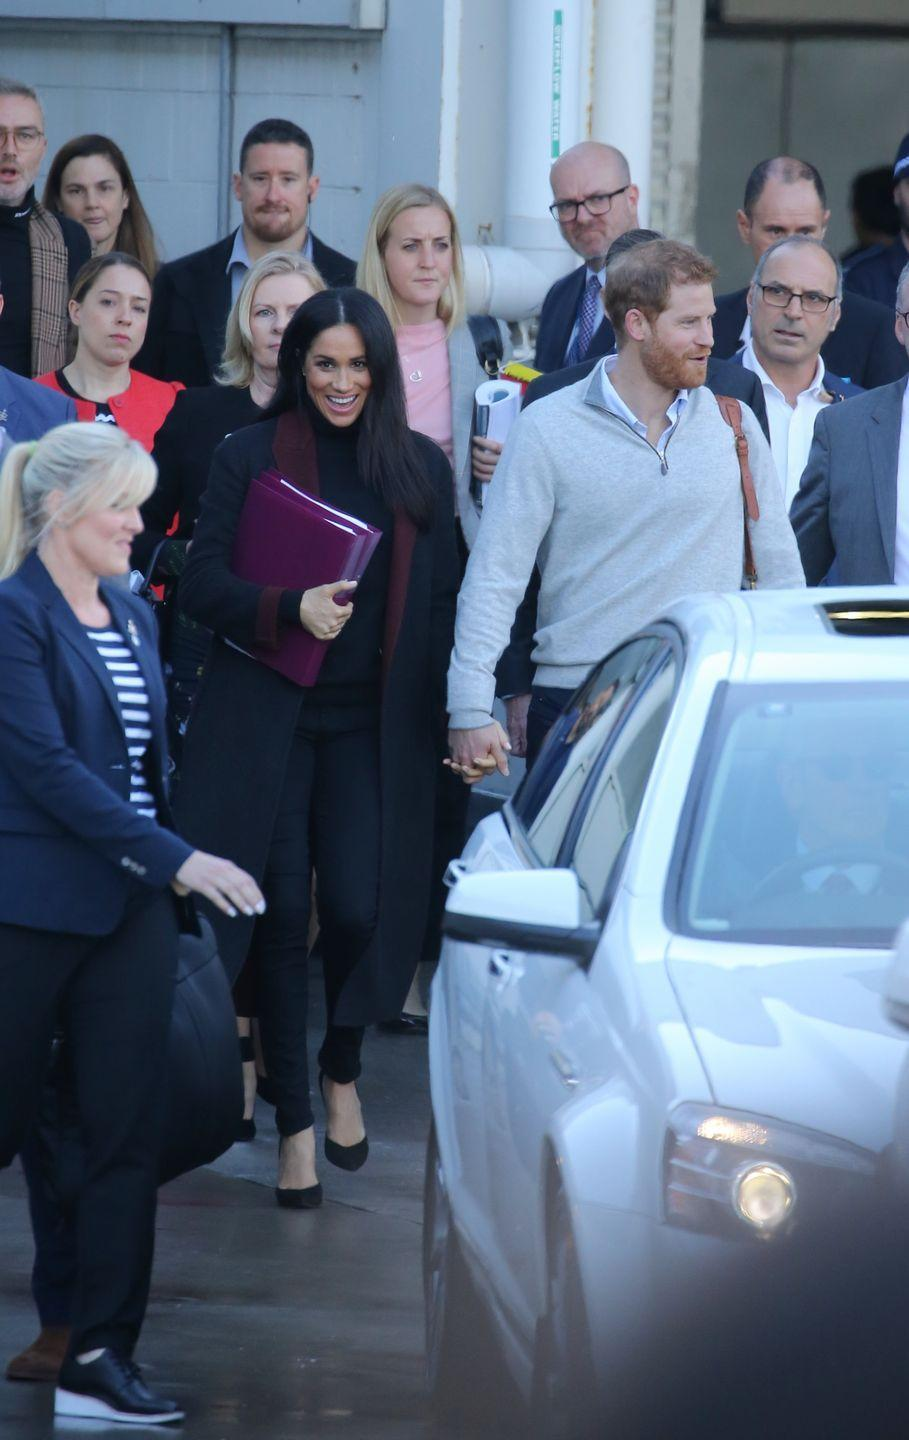 """<p>Prince Harry and Meghan Markle touched down in Sydney for <a href=""""https://www.townandcountrymag.com/society/tradition/a21273366/meghan-markle-prince-harry-first-royal-tour-2018/"""" rel=""""nofollow noopener"""" target=""""_blank"""" data-ylk=""""slk:their royal tour"""" class=""""link rapid-noclick-resp"""">their royal tour </a>with some news to share: <a href=""""https://www.townandcountrymag.com/society/tradition/a23773992/meghan-markle-pregnant-first-royal-baby-prince-harry/"""" rel=""""nofollow noopener"""" target=""""_blank"""" data-ylk=""""slk:the Duchess is pregnant!"""" class=""""link rapid-noclick-resp"""">the Duchess is pregnant!</a> Meghan wore a black coat with a maroon trim for the occasion, with a black turtleneck and matching pants. </p>"""